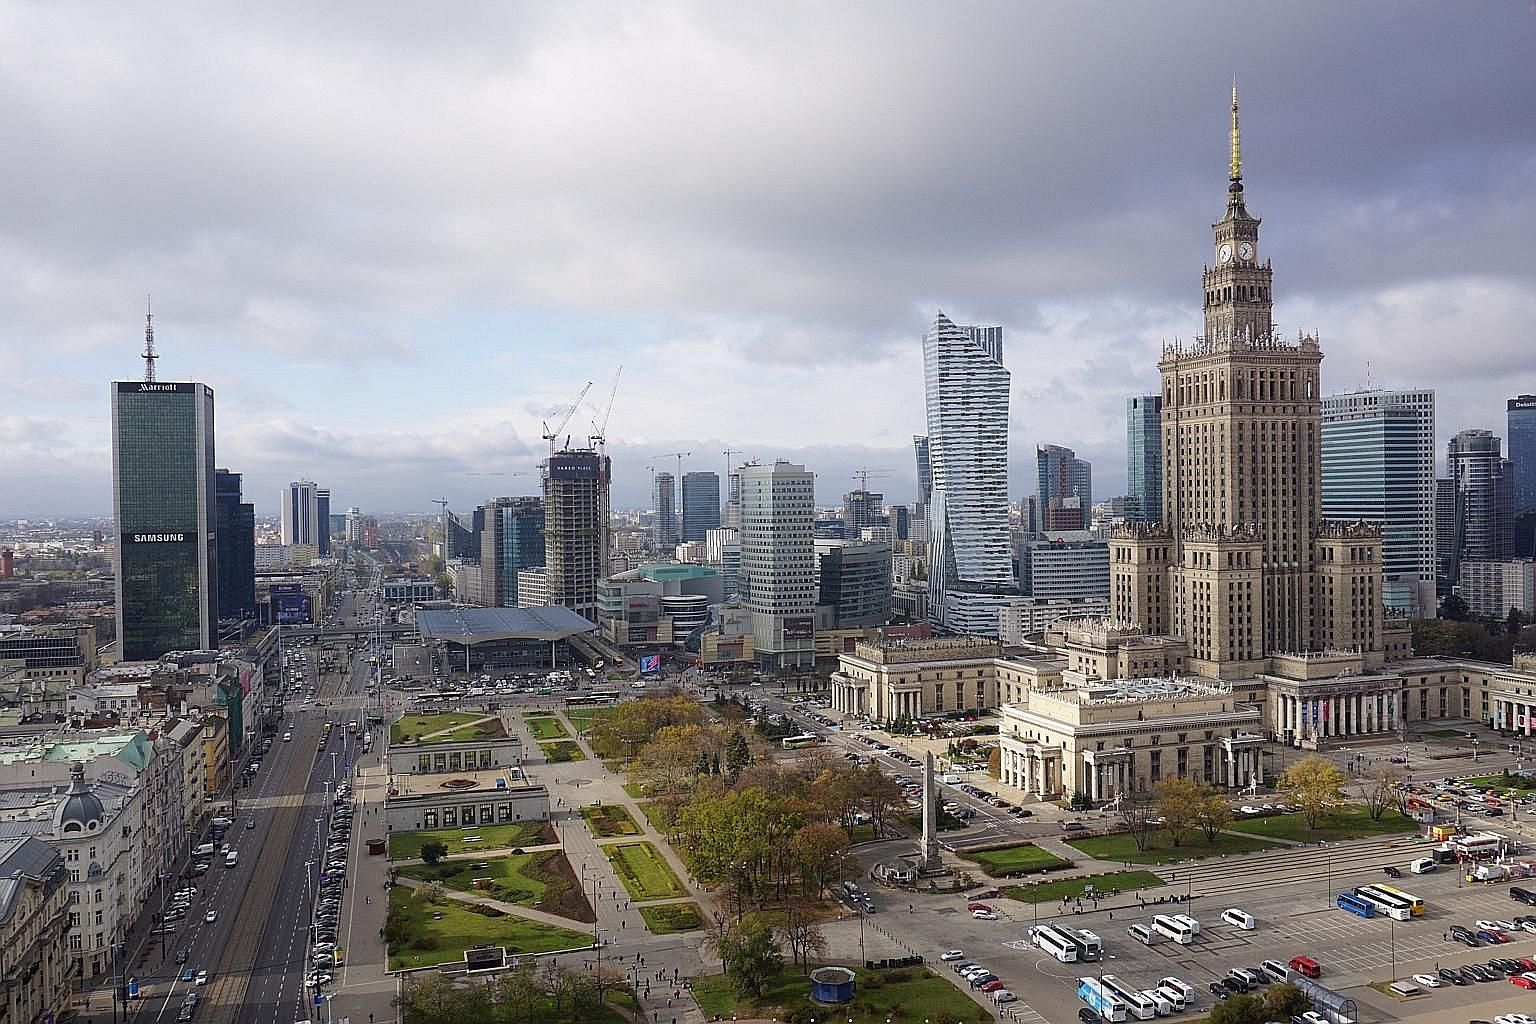 The Warsaw skyline, once dominated by a huge Soviet-style palace, today resembles a fast-growing metropolis. More foreign investors have realised that it is Poland, the Czech Republic and Hungary where the return on investment is substantial, say exp